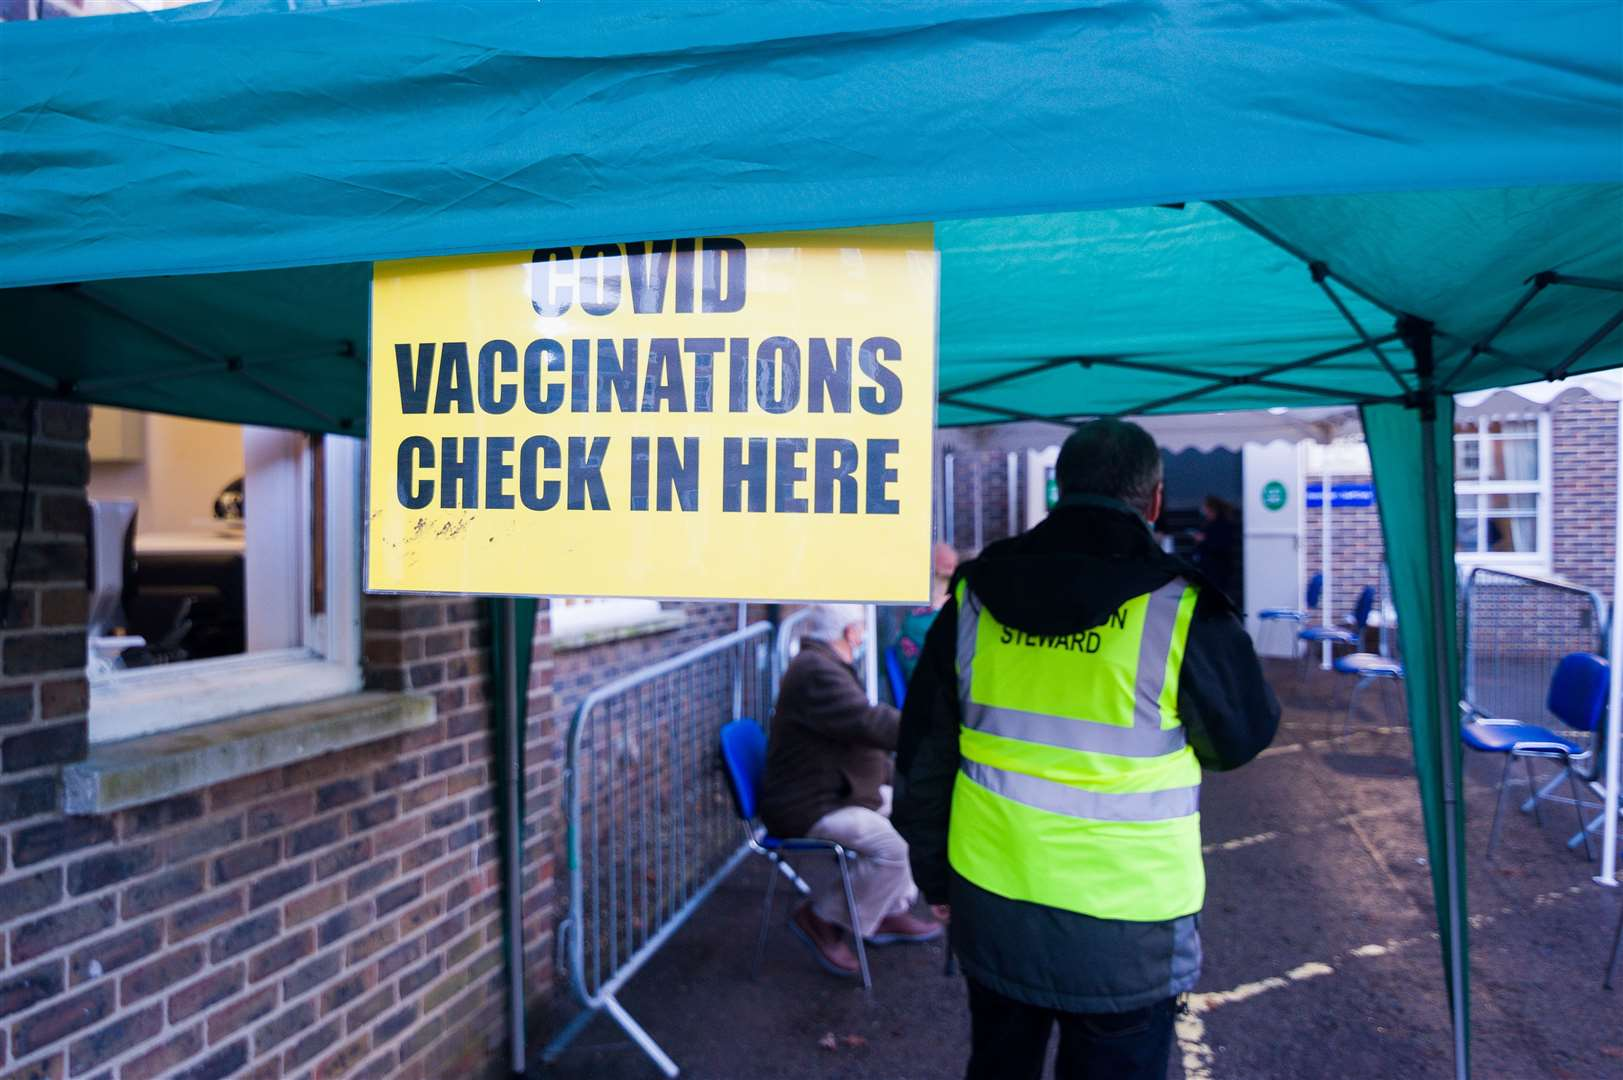 COVID-19 vaccinations have begun at the St James Medical Centre in King's Lynn.. (43575050)